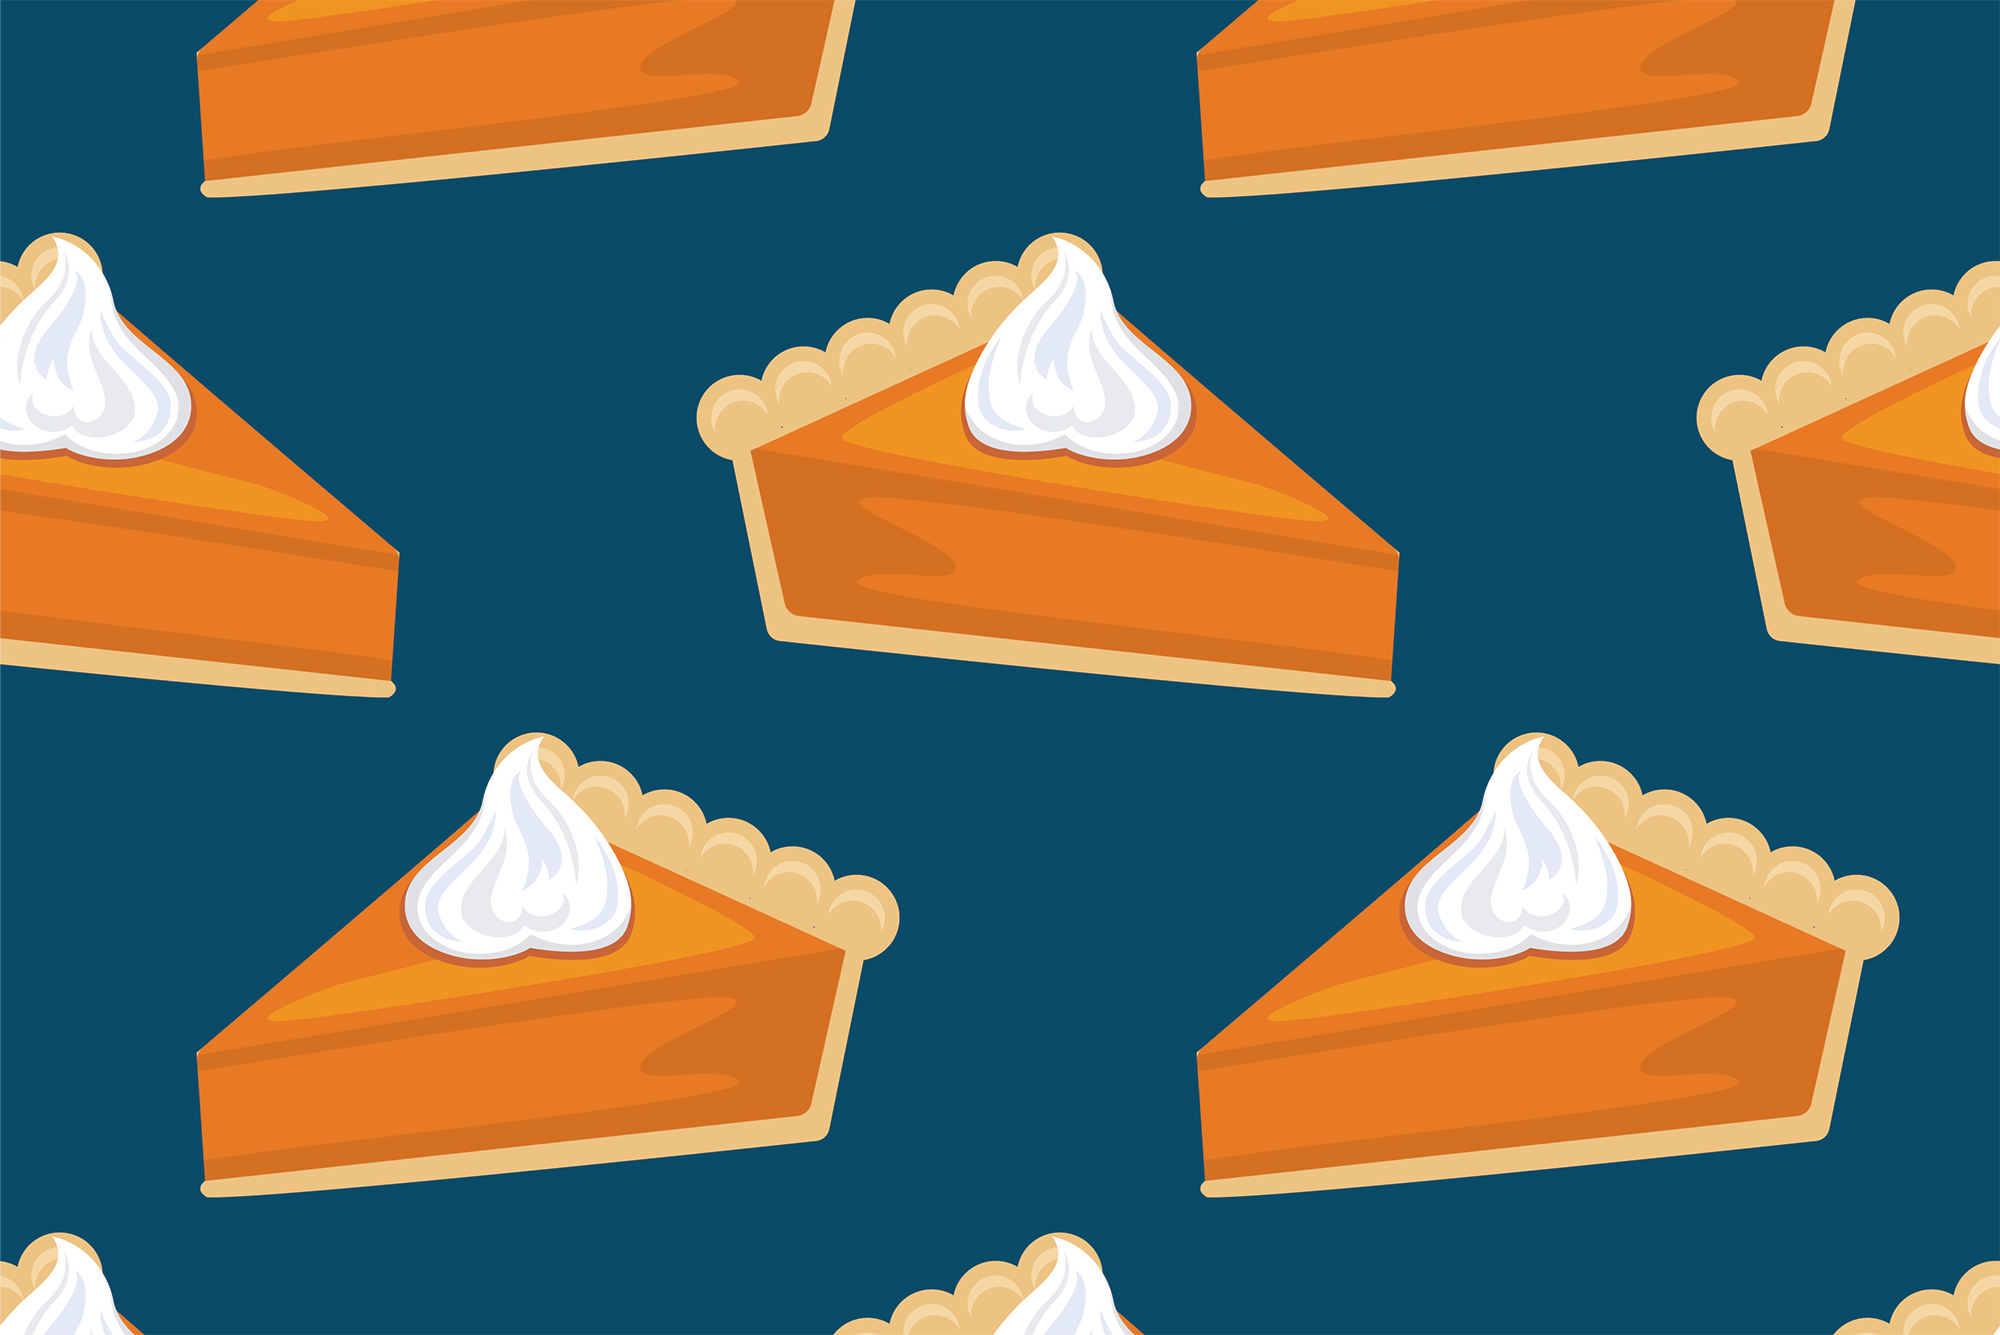 Illustration of slices of pumpkin pie with whipped cream on a dark blue background.